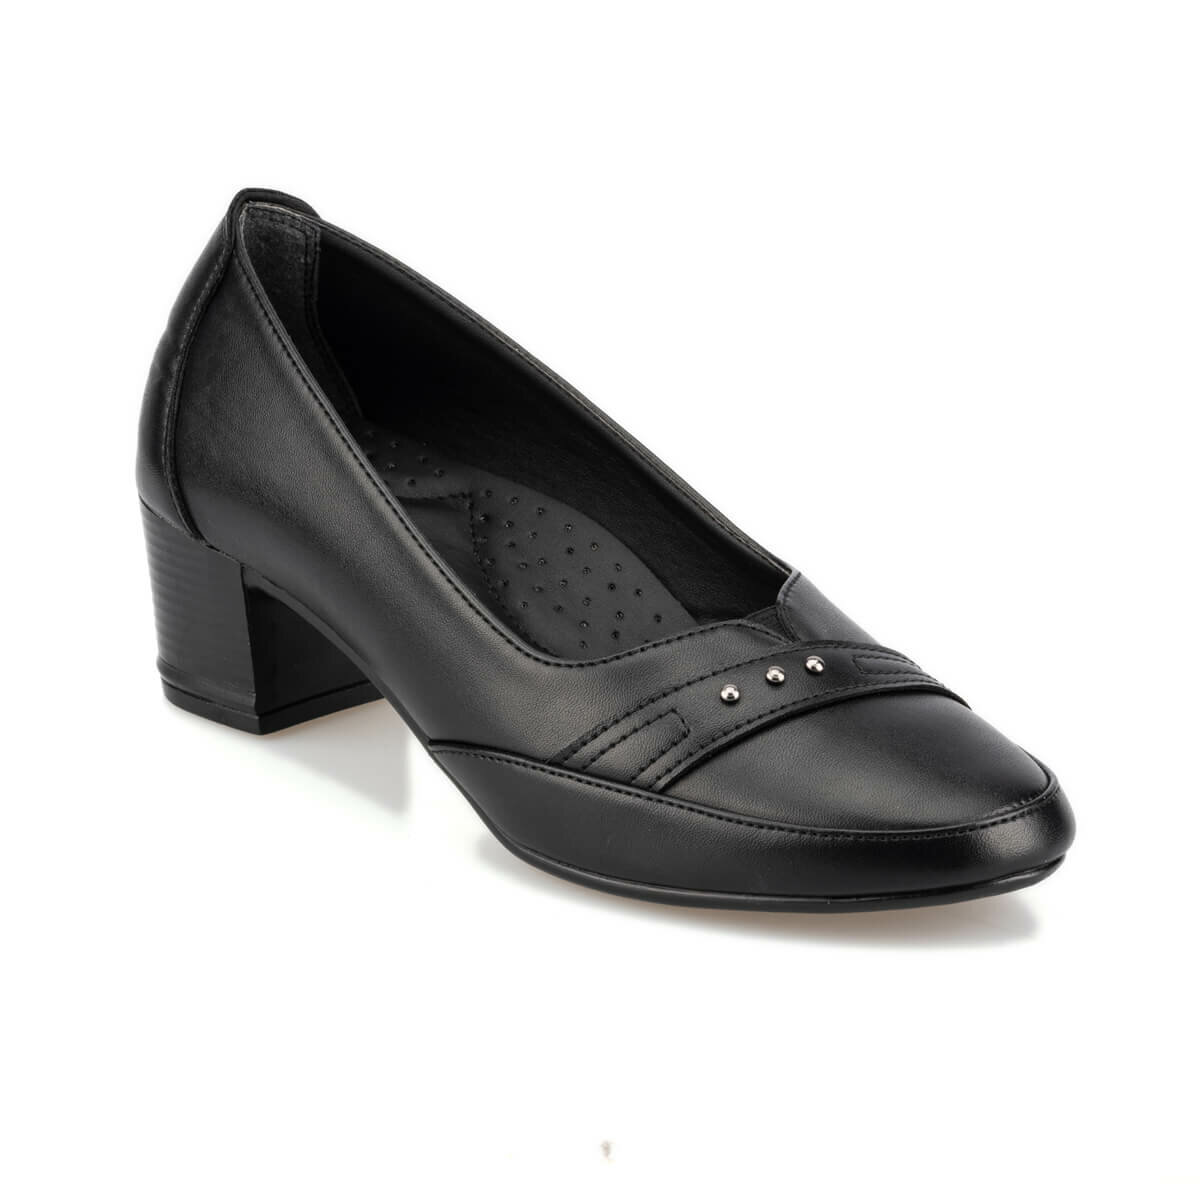 FLO 92. 151060.Z Black Women Gova Shoes Polaris